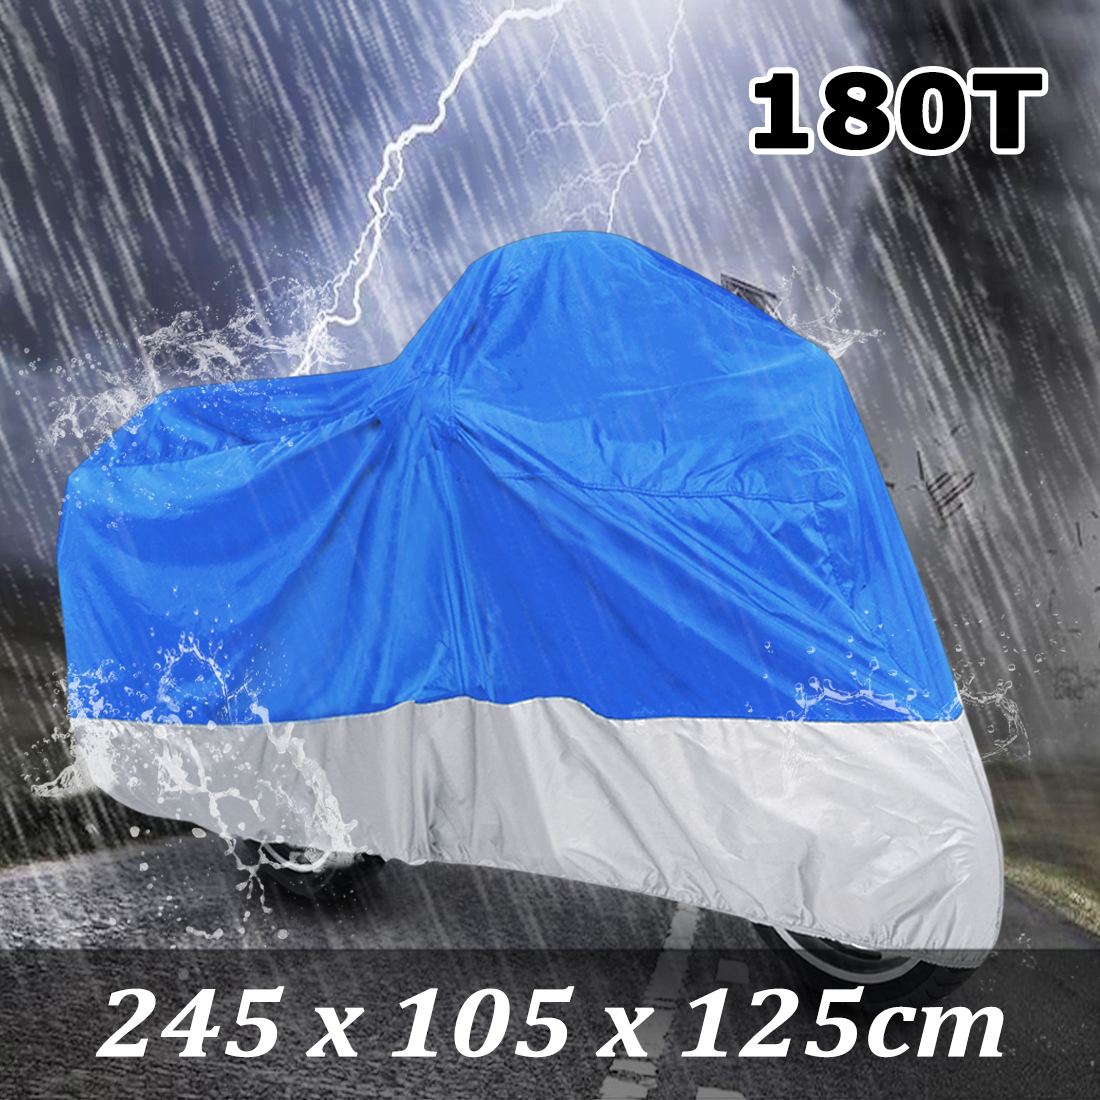 XL 180T Motorcycle Cover Rain Dust Blue+Silver Outdoor UV Protector For Harley Davidson